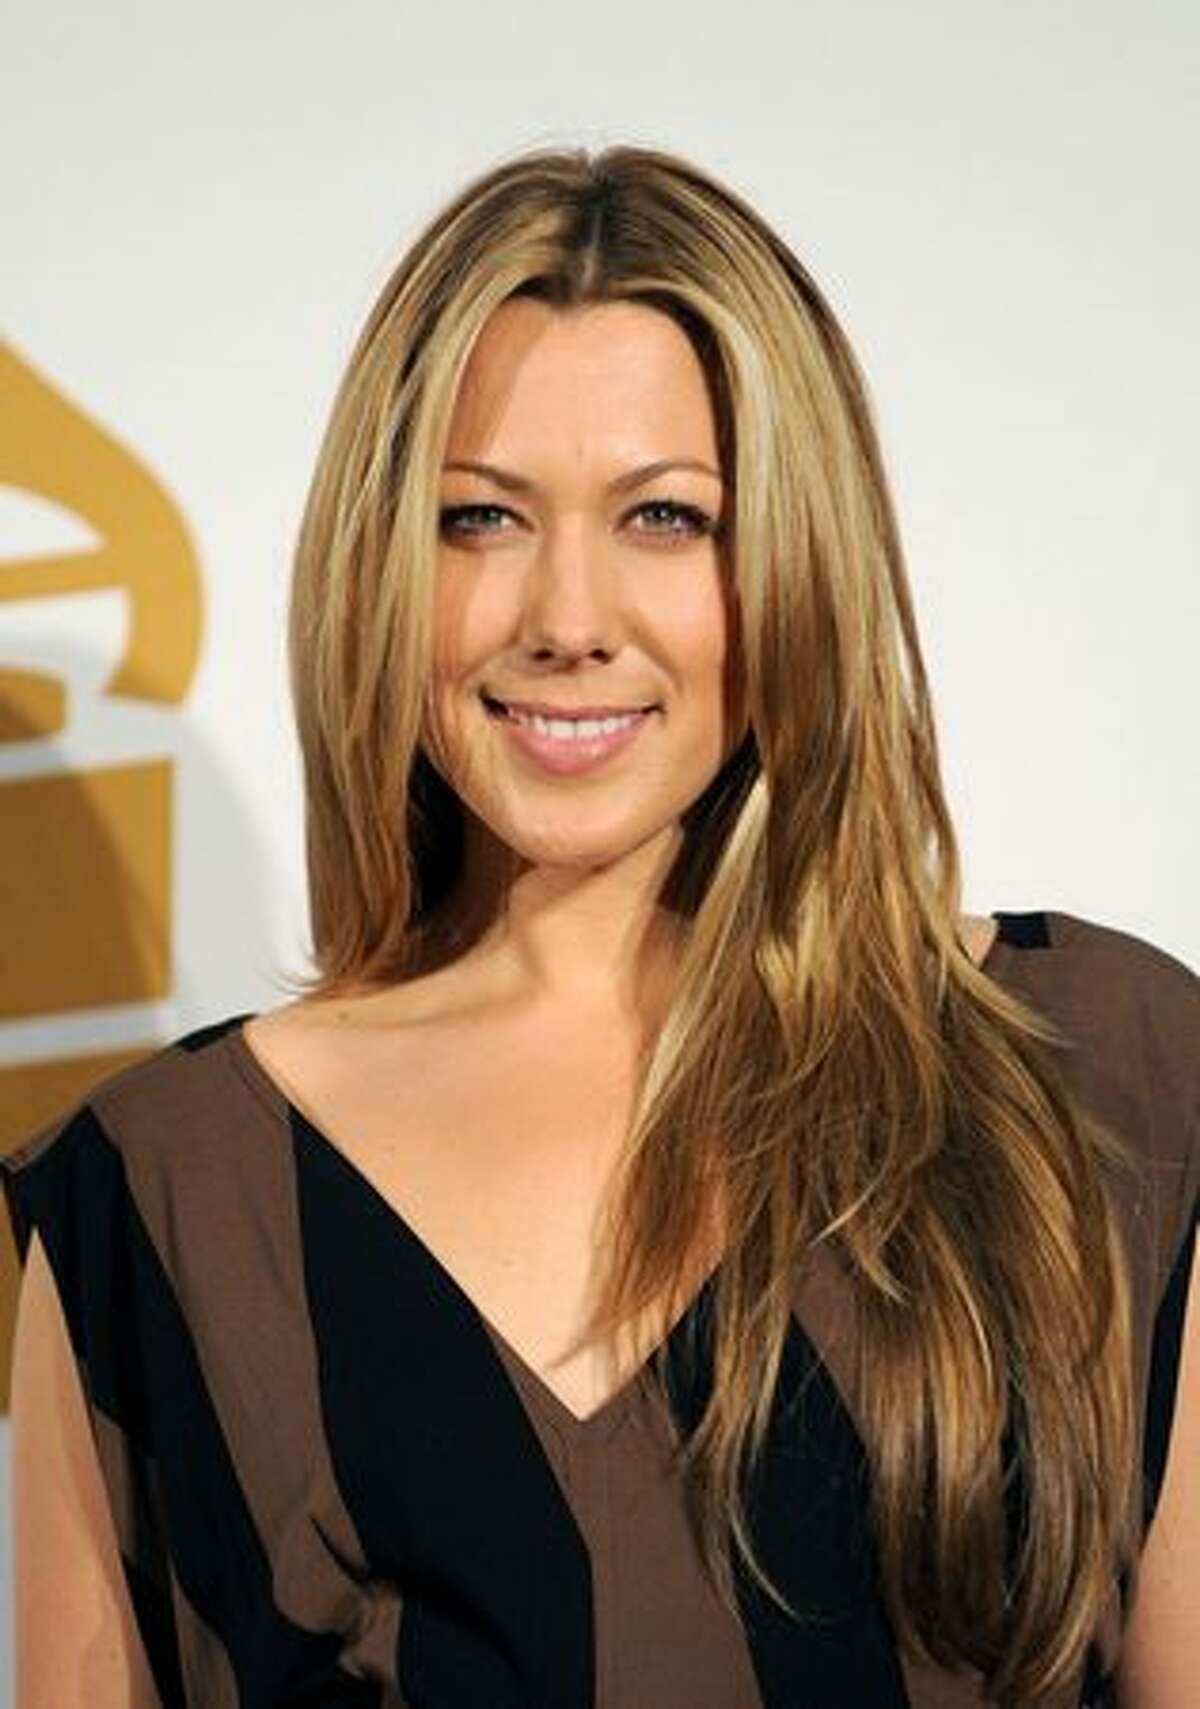 Singer Colbie Caillat poses in the press room during The GRAMMY Nominations Concert Live! at the Club Nokia on December 2, 2009 in Los Angeles, California.